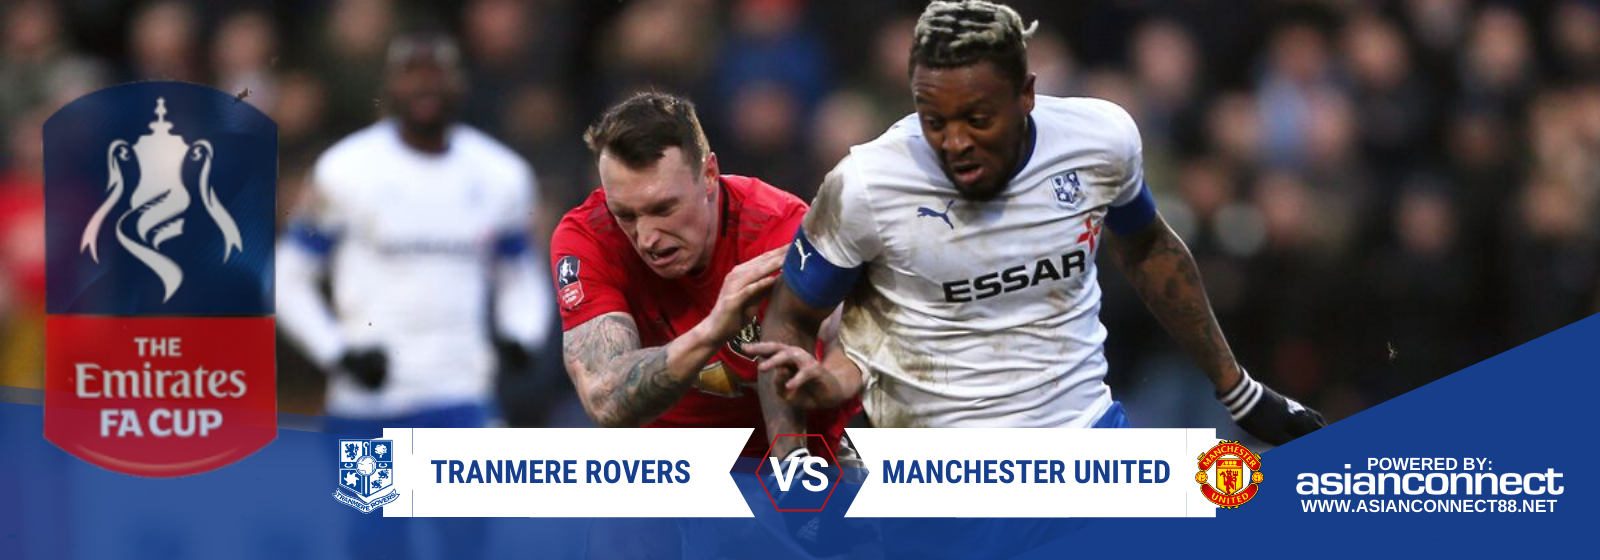 Asianconnect: Tranmere Rovers vs Manchester United Odds for January 26, 2020